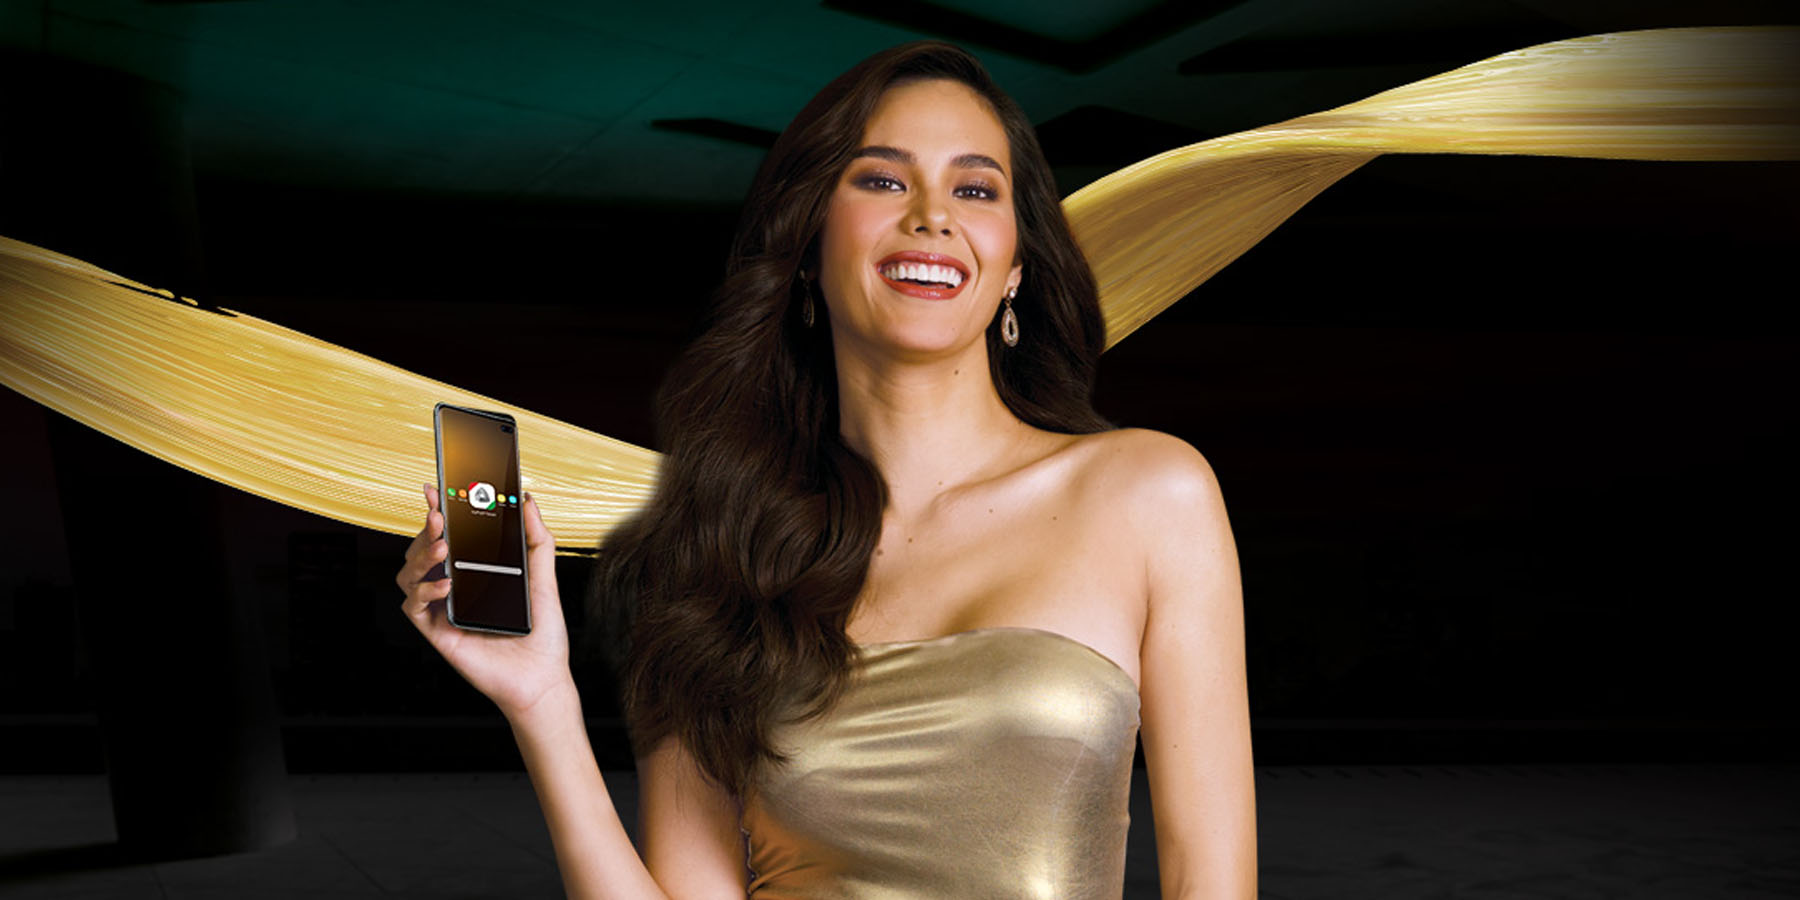 TECH: Catriona Gray is the New Face of this Reimagined Postpaid Experience